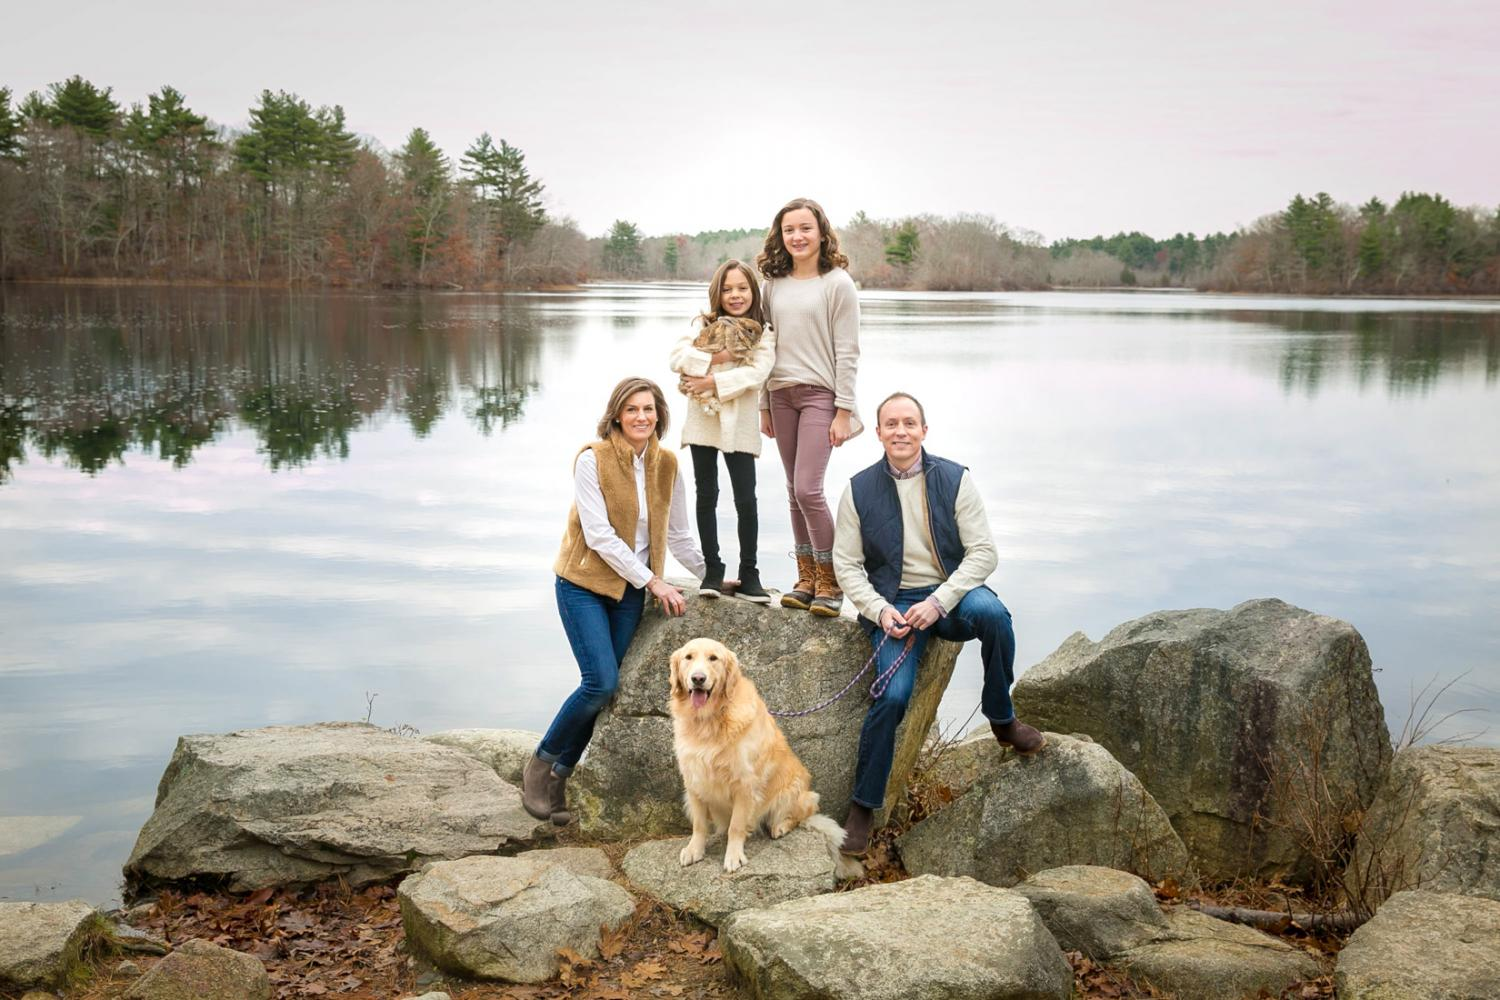 Pardo_Photo_Dog_Family_Portrait_Borderland_State_Park_Easton_MA